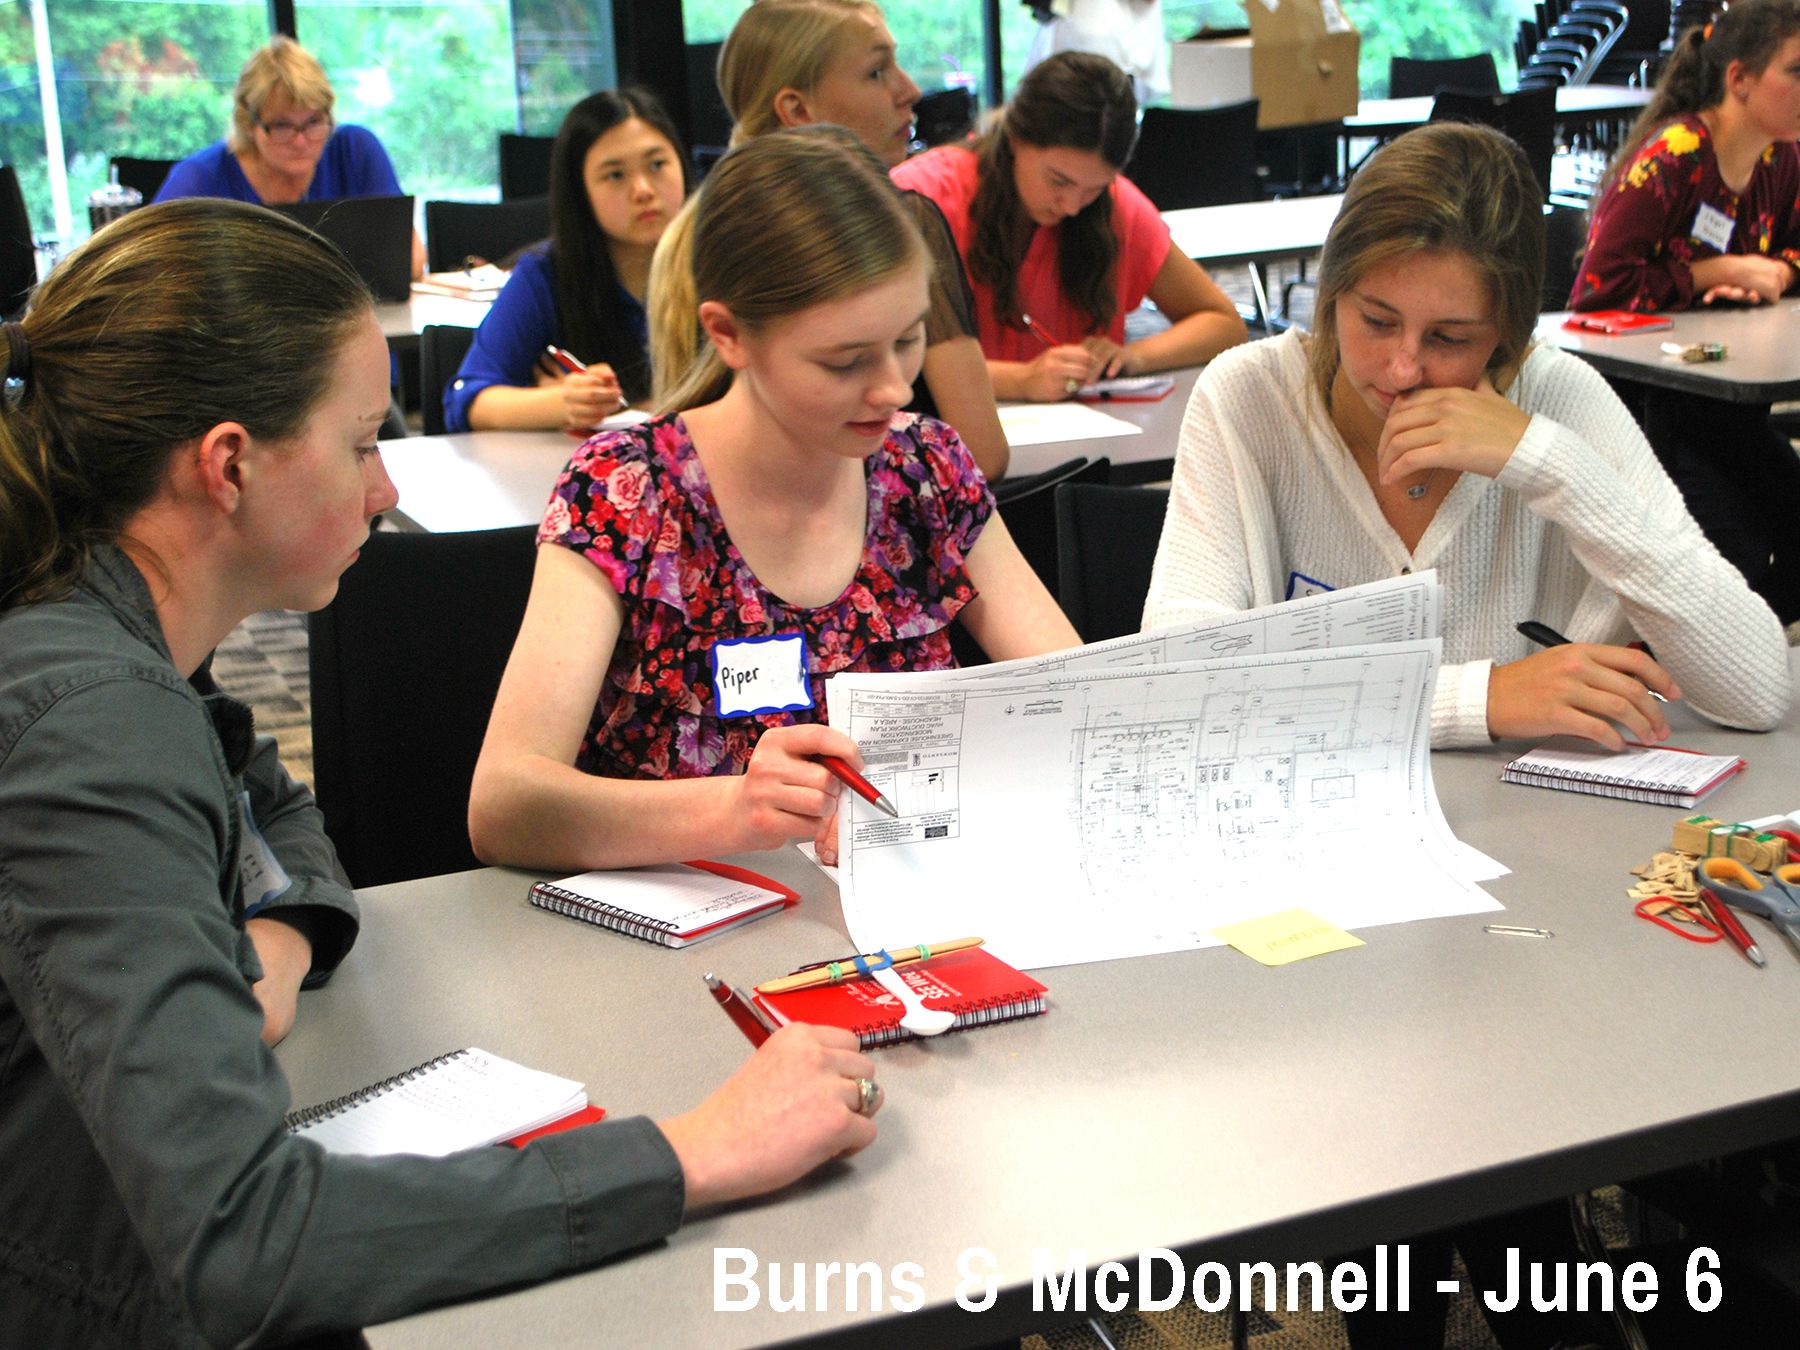 Cor Jesu students study engineering drawings while learning about Engineering Consulting at Burns & McDonnell